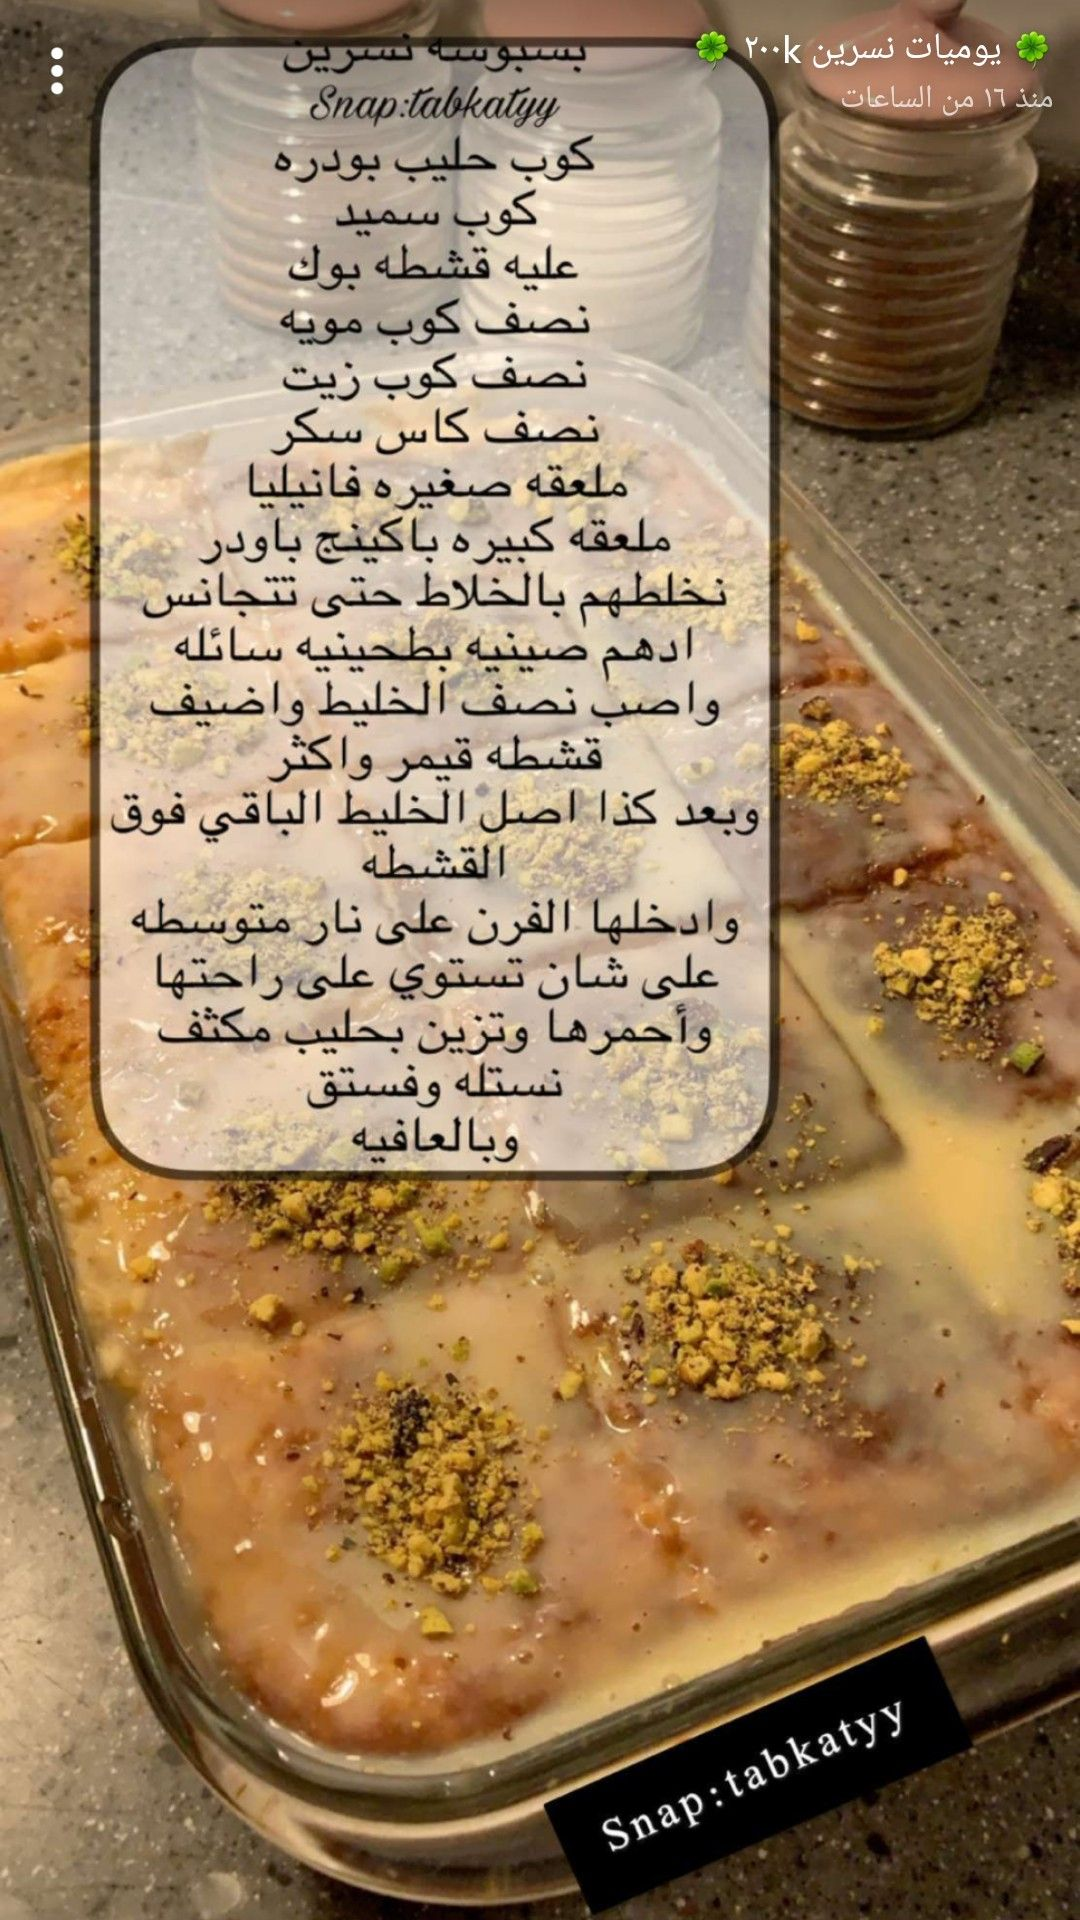 Pin By Hayam Elzwi On Cooking In 2021 Yummy Food Dessert Food Receipes Food Recipies